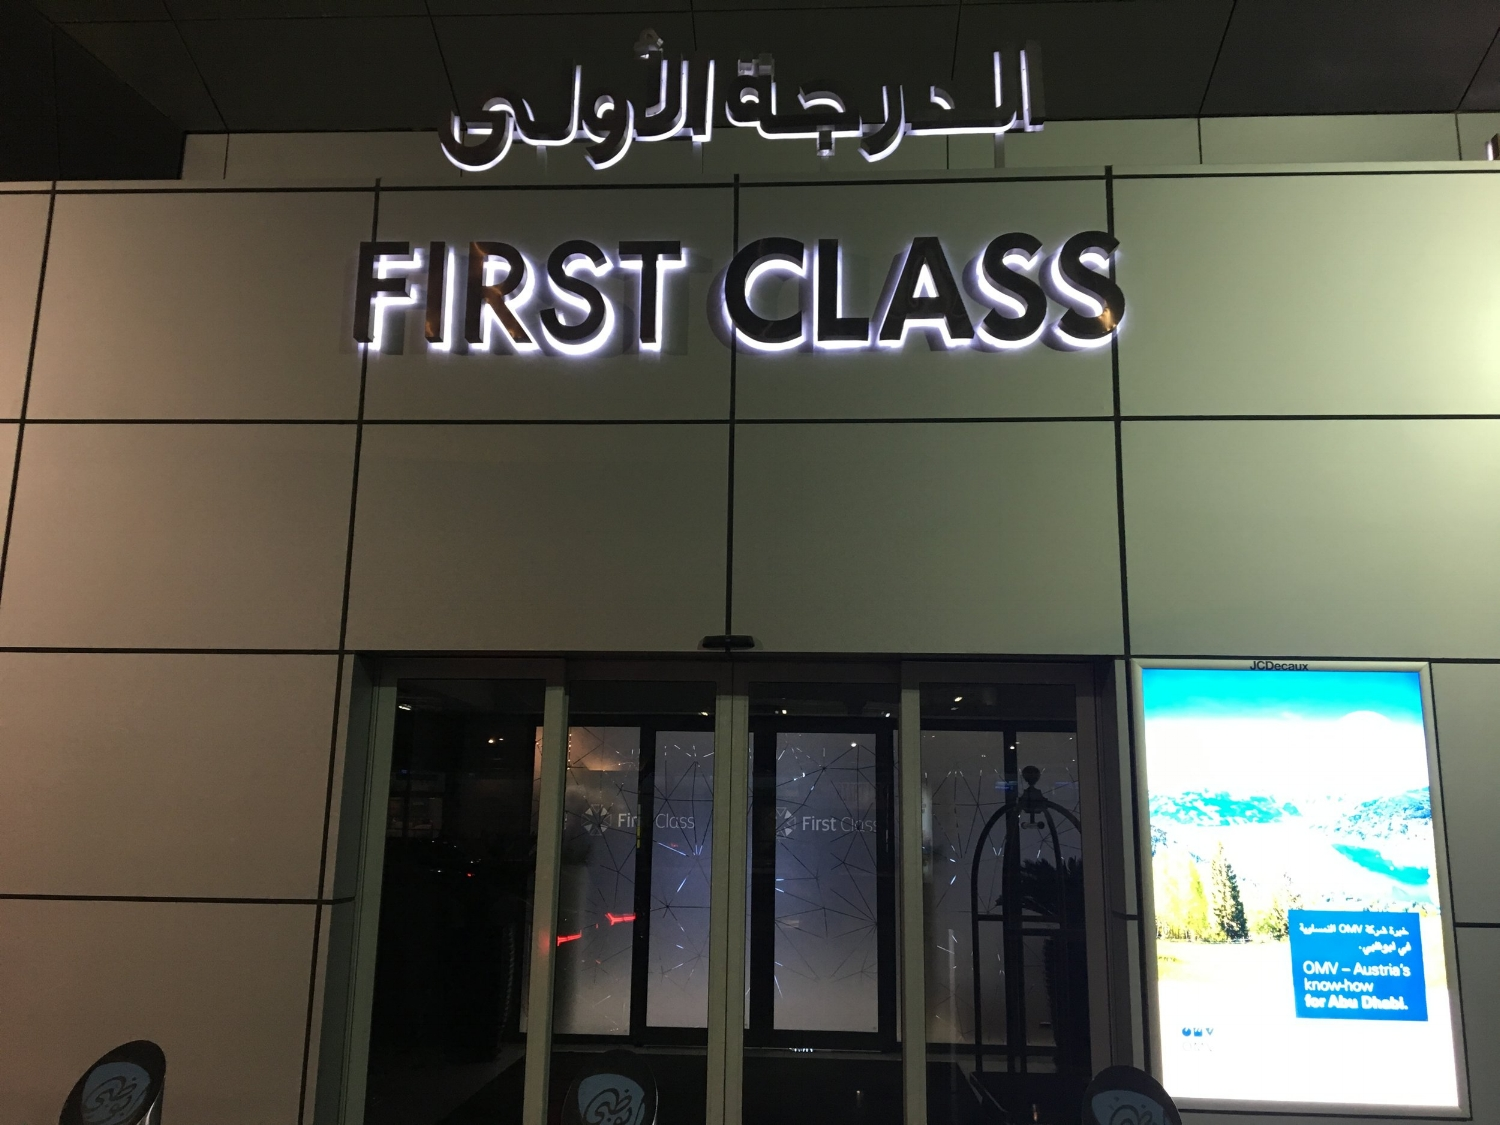 ETIHAD FIRST CLASS CHECK-IN